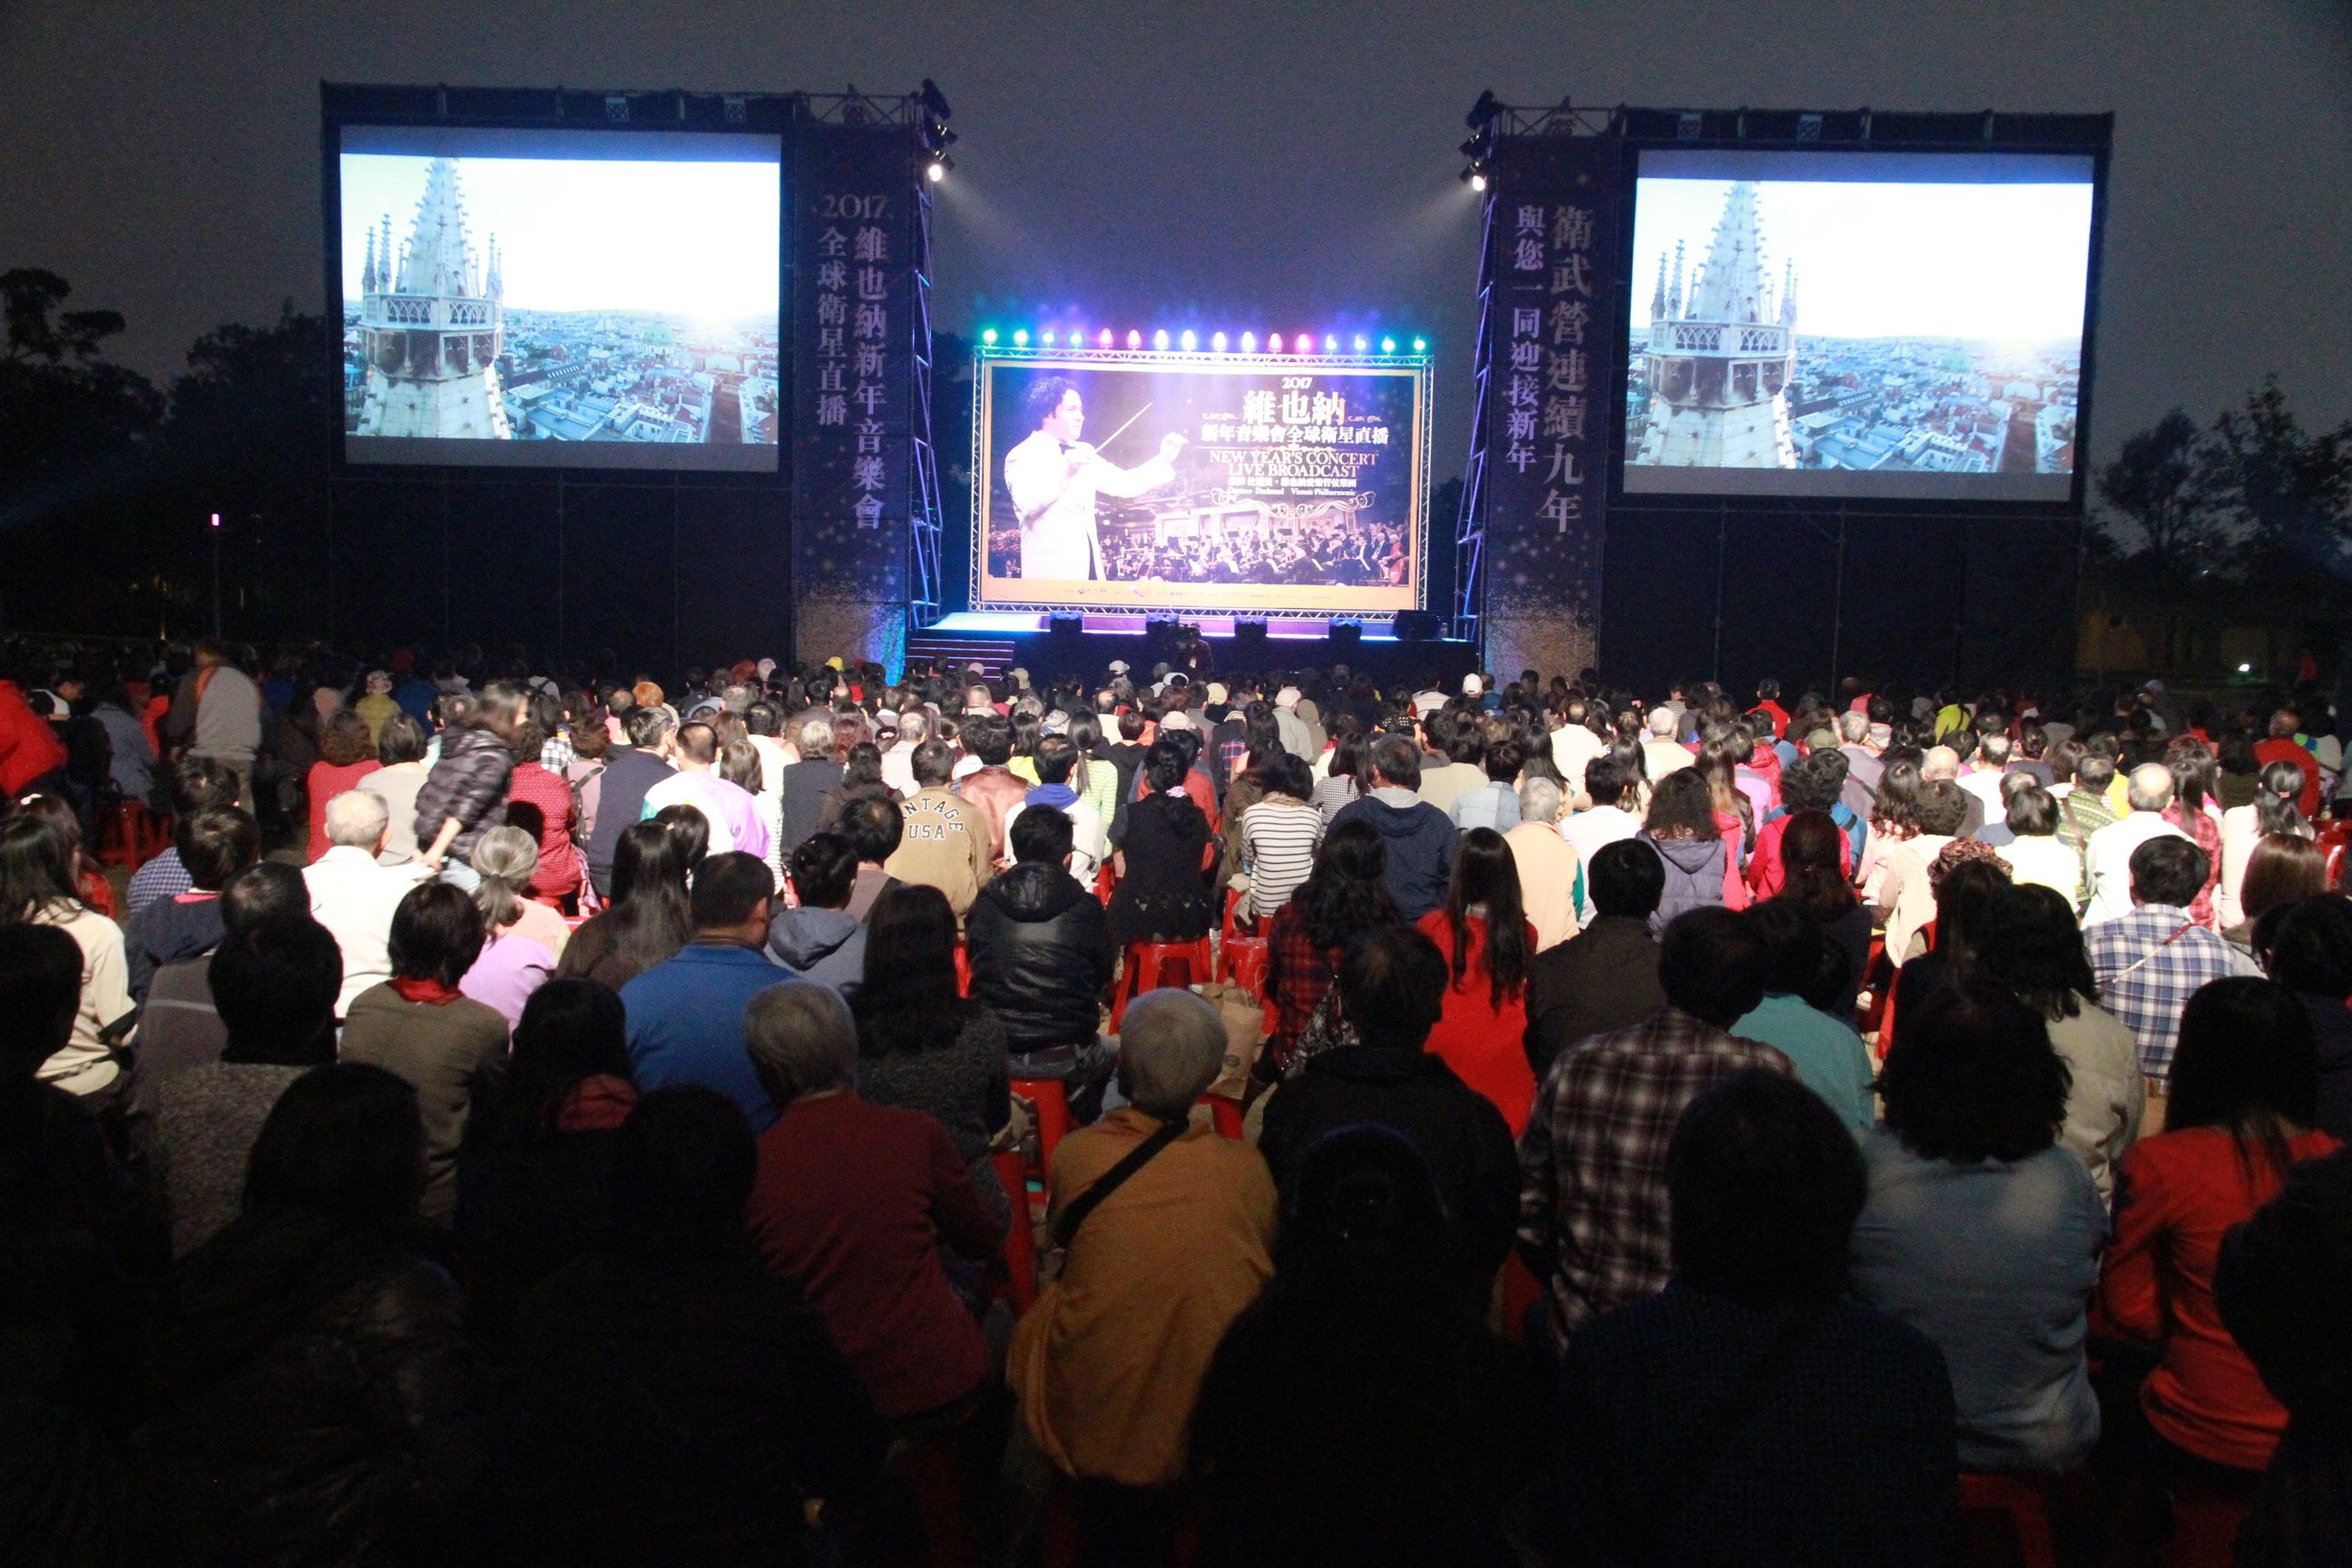 New Year's Concert in Vienna to be telecast live outdoors in Southern Taiwan